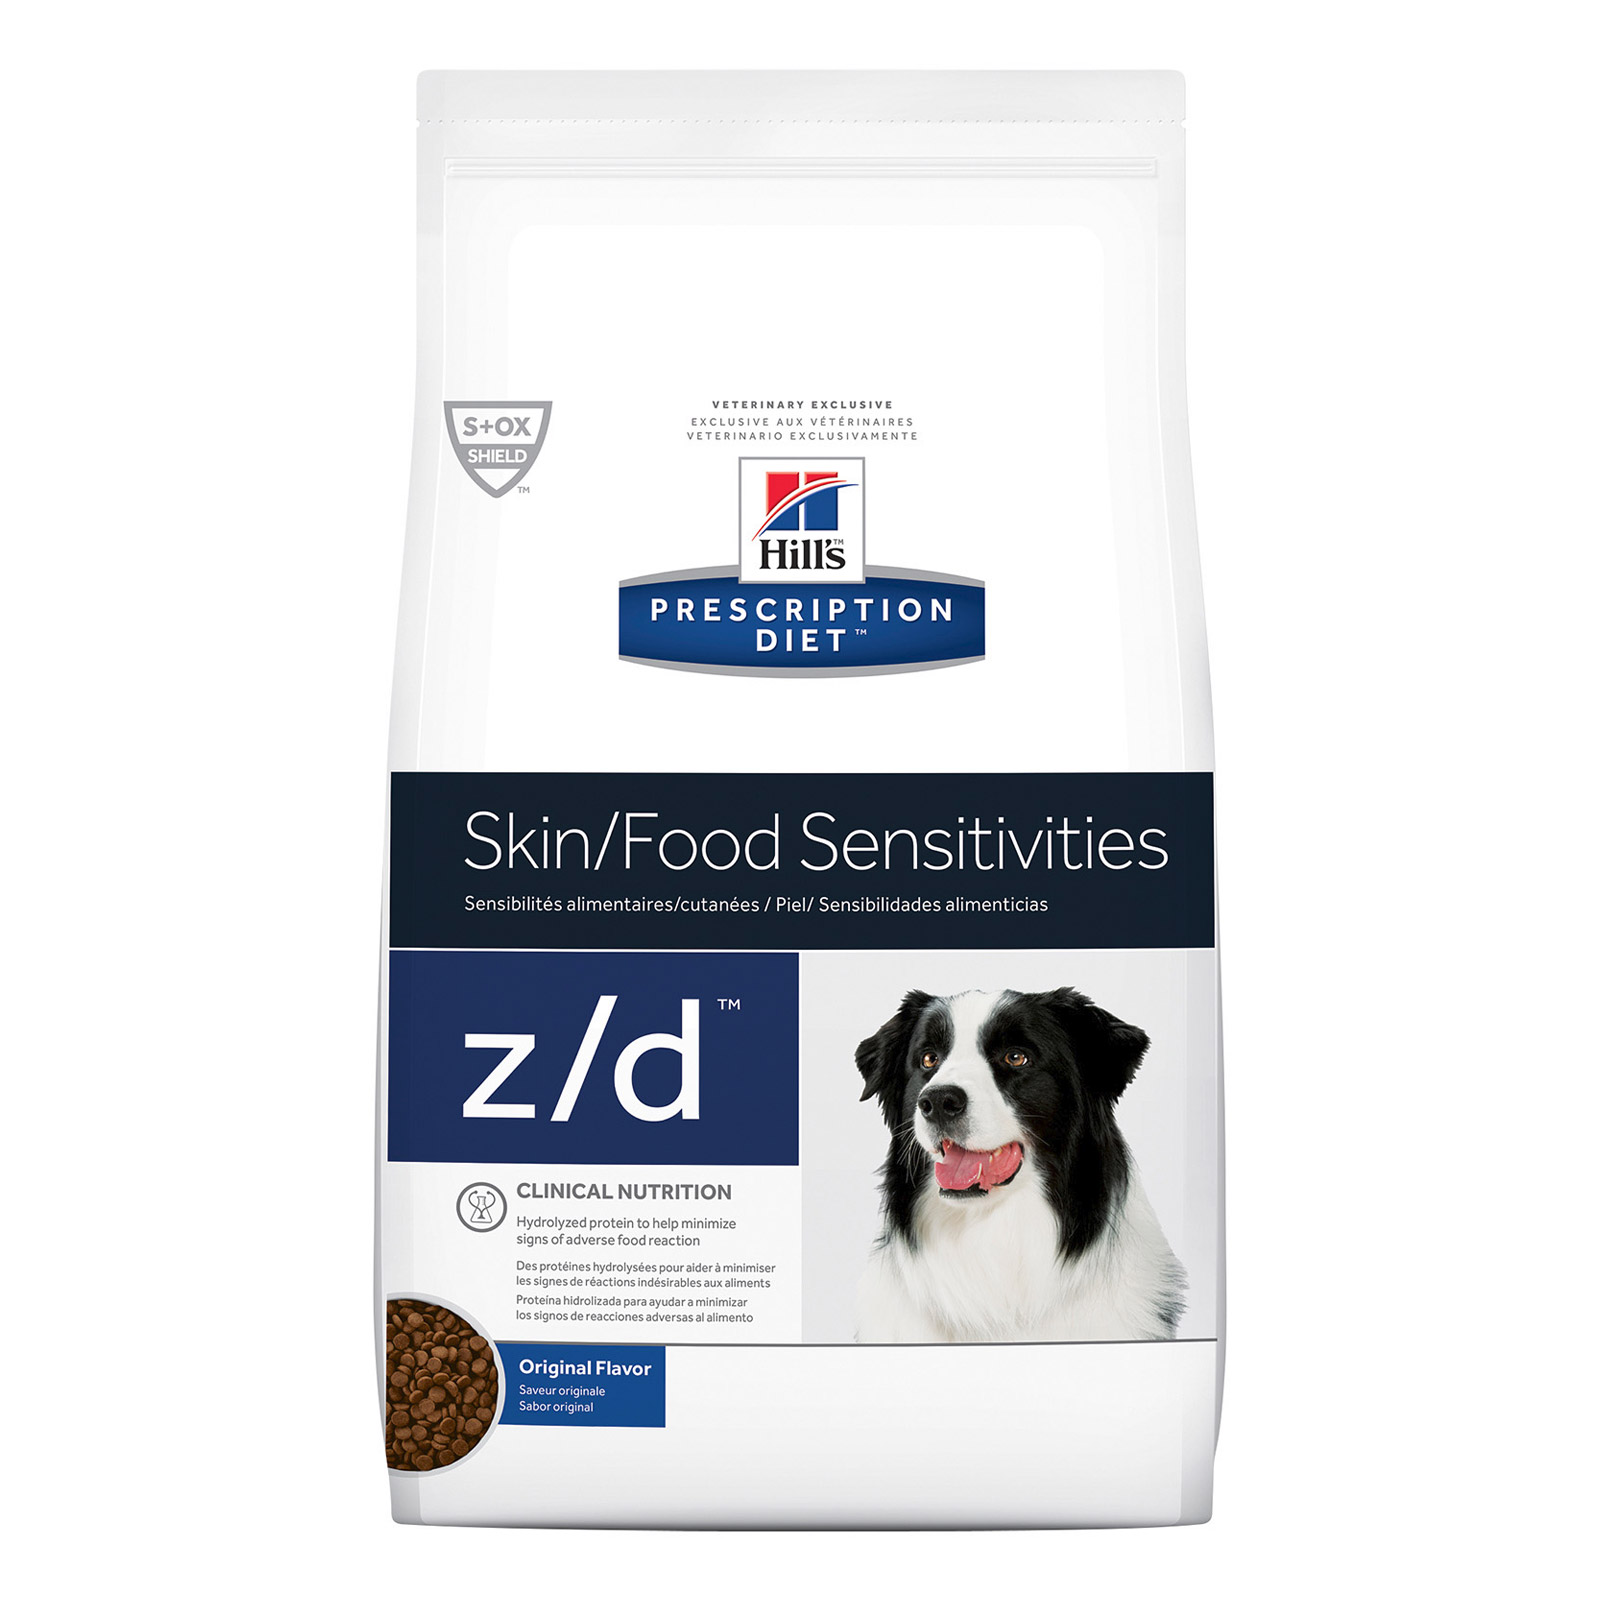 Hill's Prescription Diet Z/D Skin/Food Sensitivities Dry Dog Food   7.98 Kgs